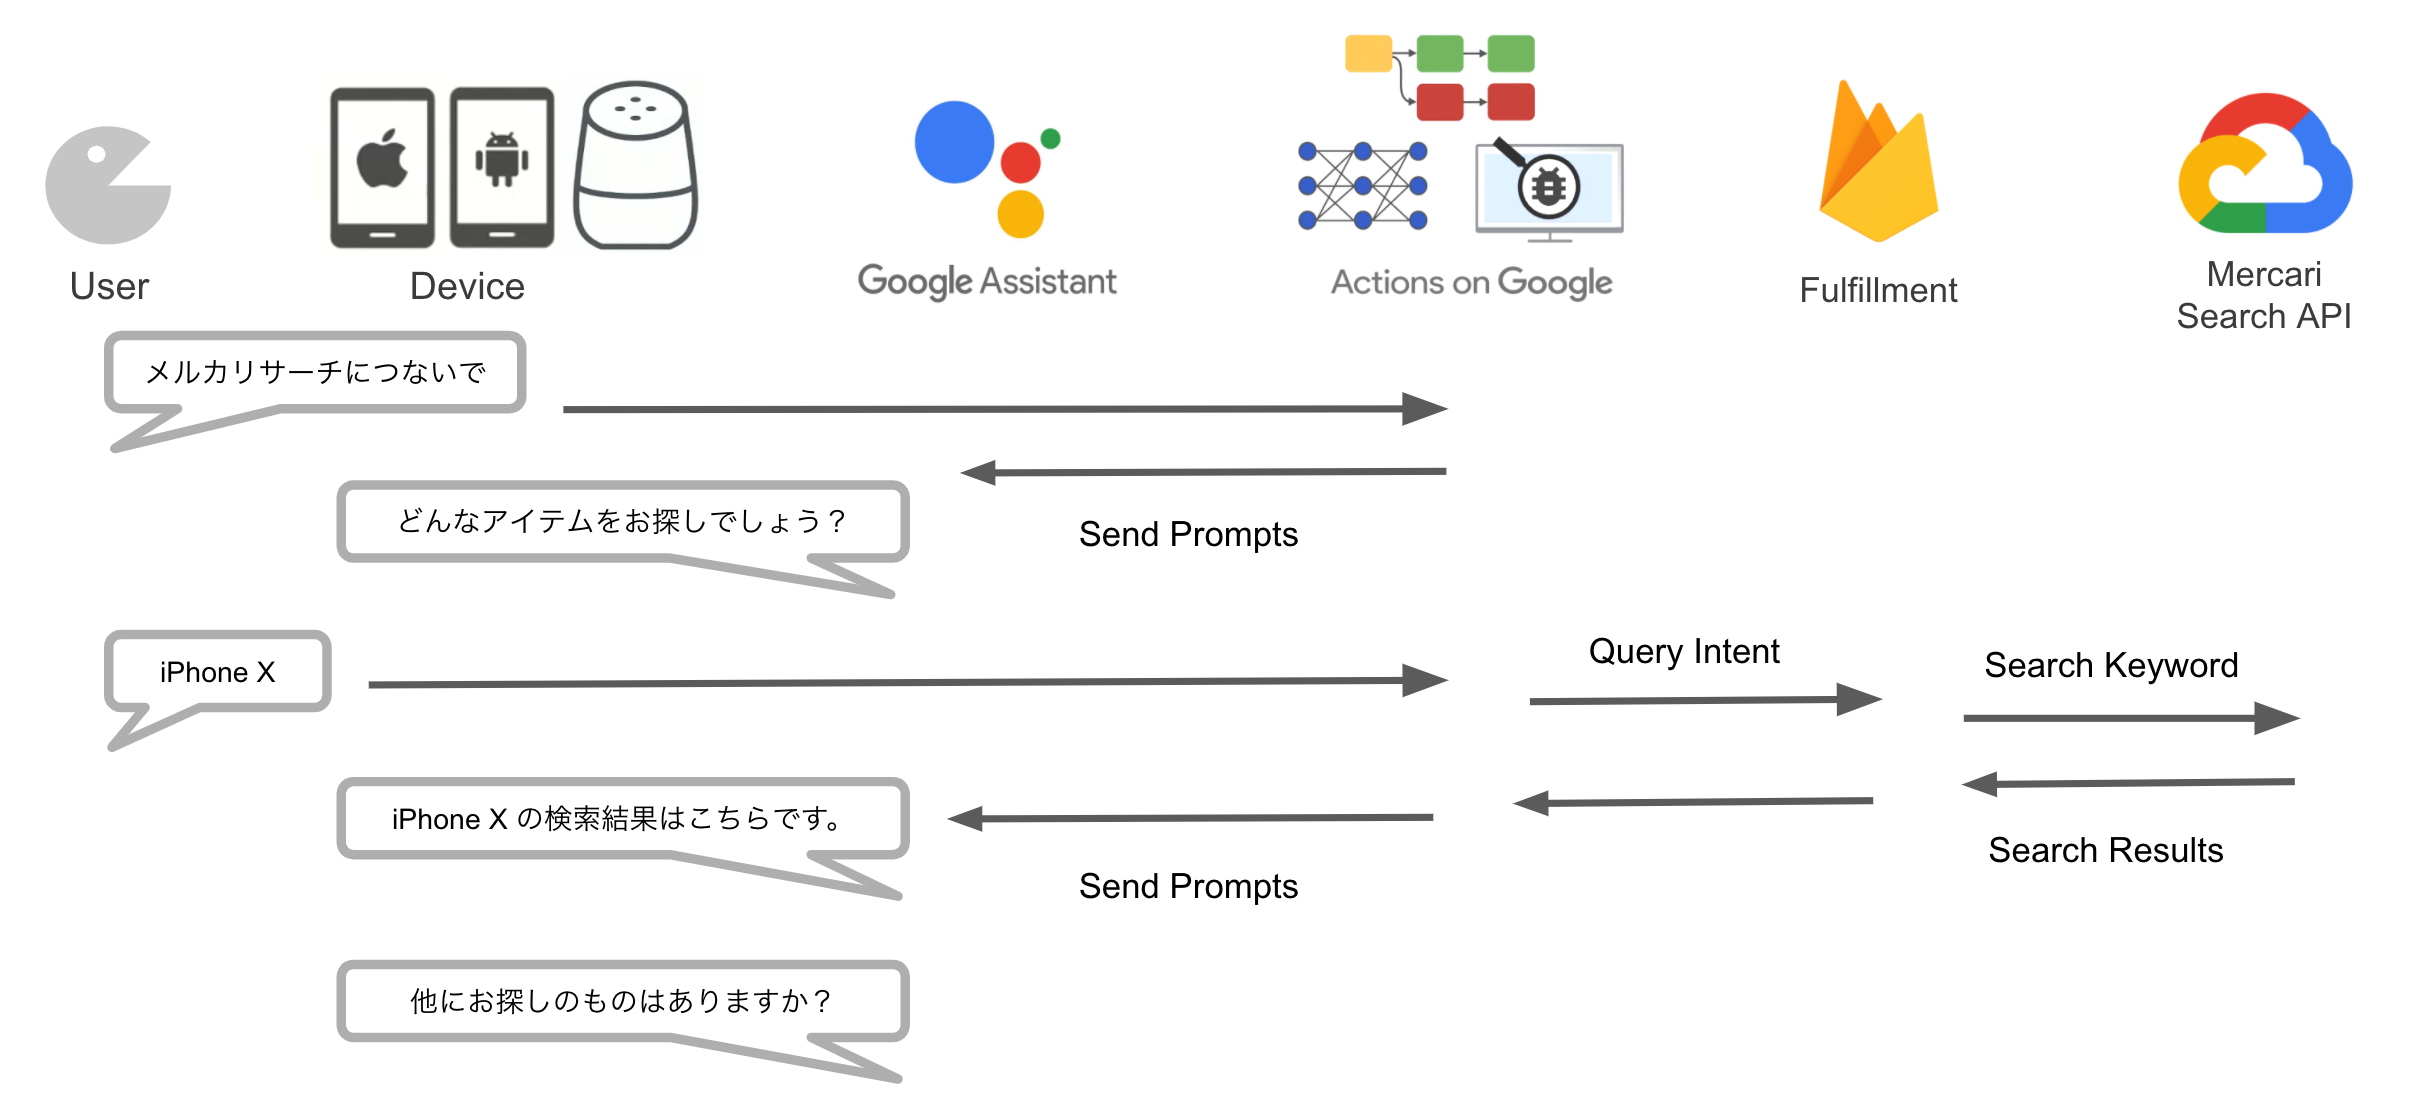 Actions Builder を使って Mercari Voice Search を作ってみた